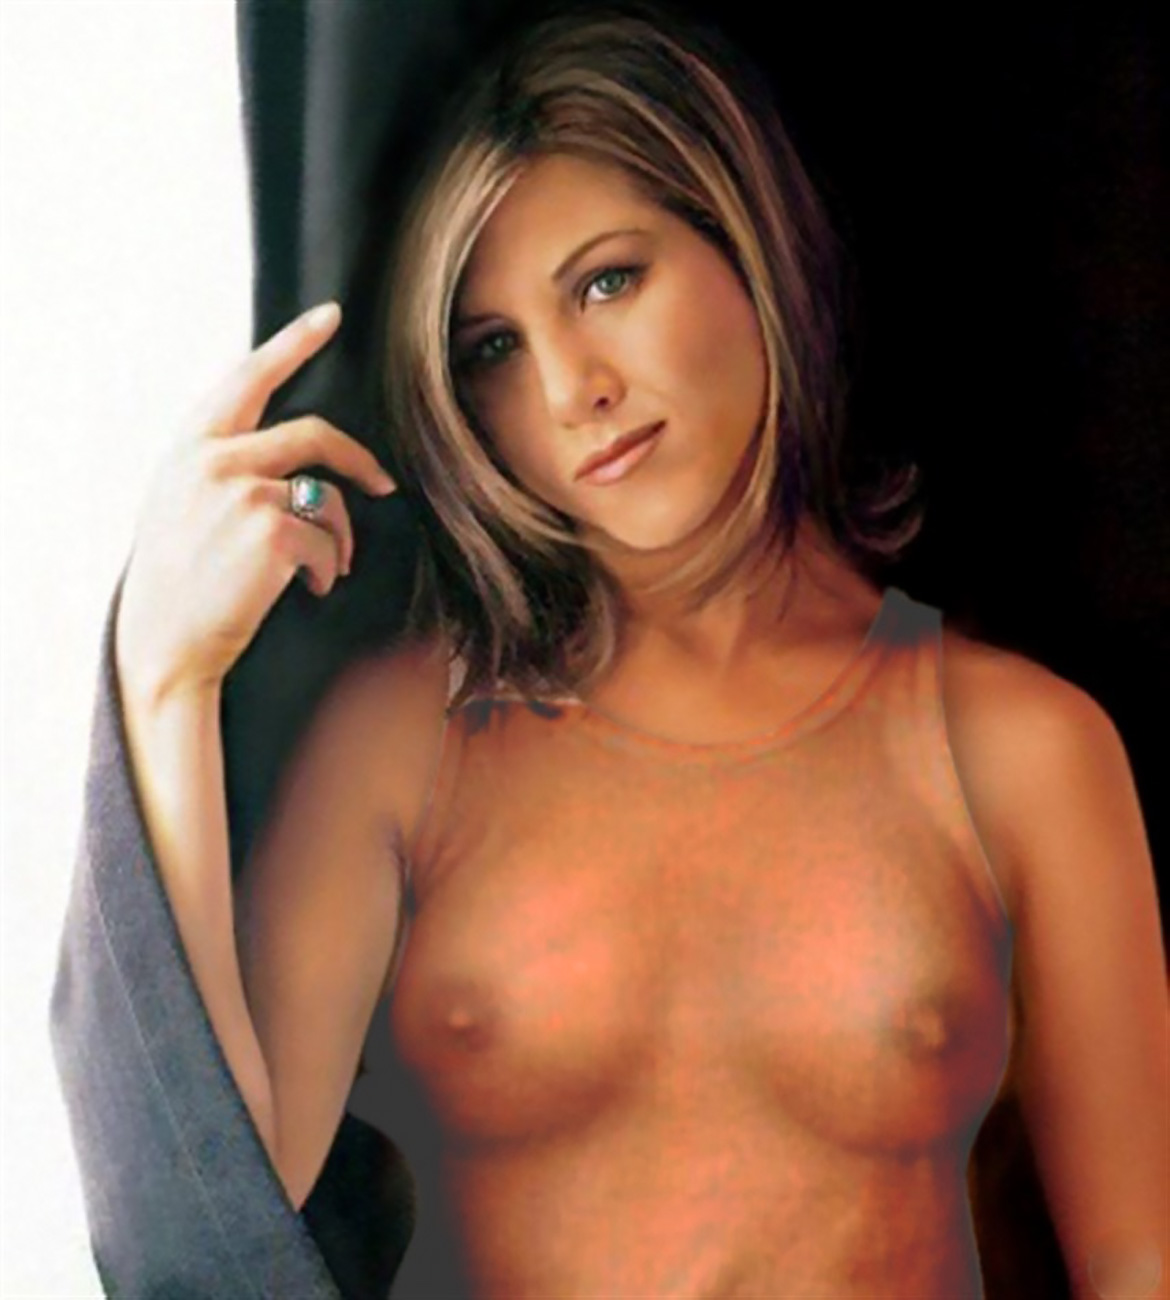 jennifer-aniston-young-and-naked-pictures-of-hot-sexy-naked-women